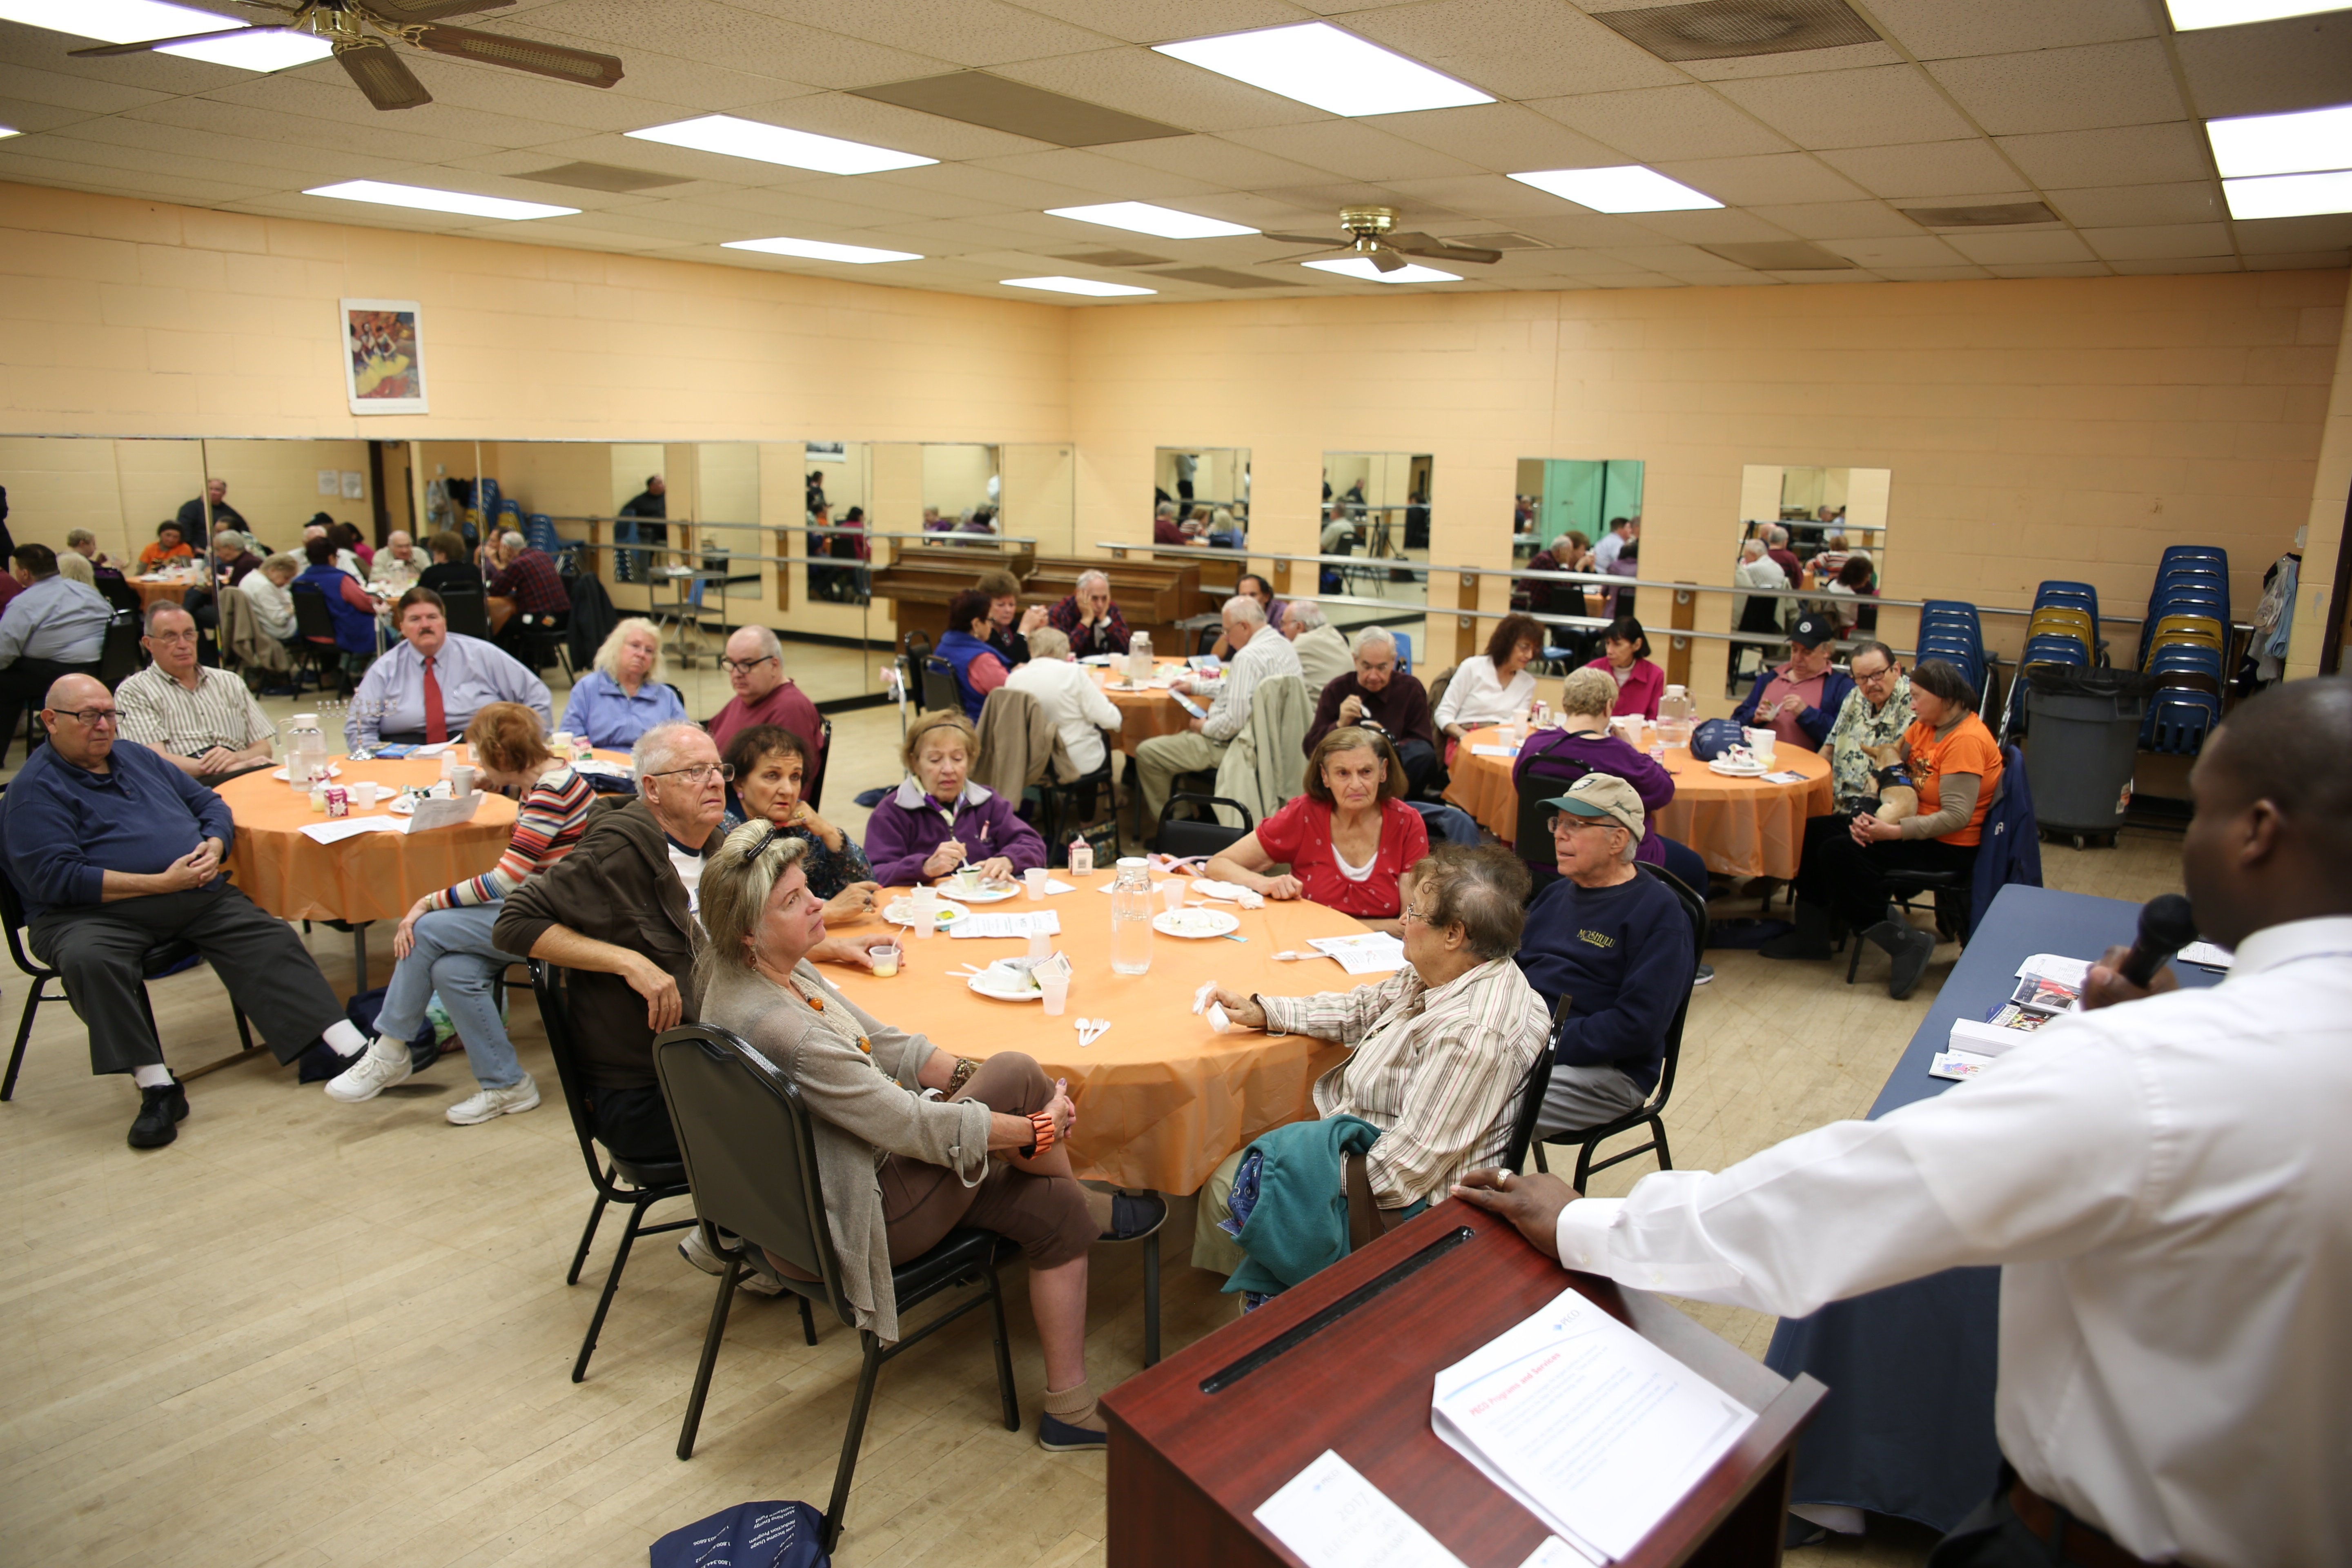 Seniors socialize at the Rhawnhurst NORC, operated by the Jewish Federation in partnership with Catholic Health Care Services, helps older adults living within Philly ZIP codes of 19111, 19114, 19115, 19116, 19149 and 19152. The NORC--naturally occuring retirement community--provides maintenance and repairs; transportation to medical appointments and grocery shopping; lunch and learn gatherings; and friendly visits. (Credit: JewishPhilly.org)